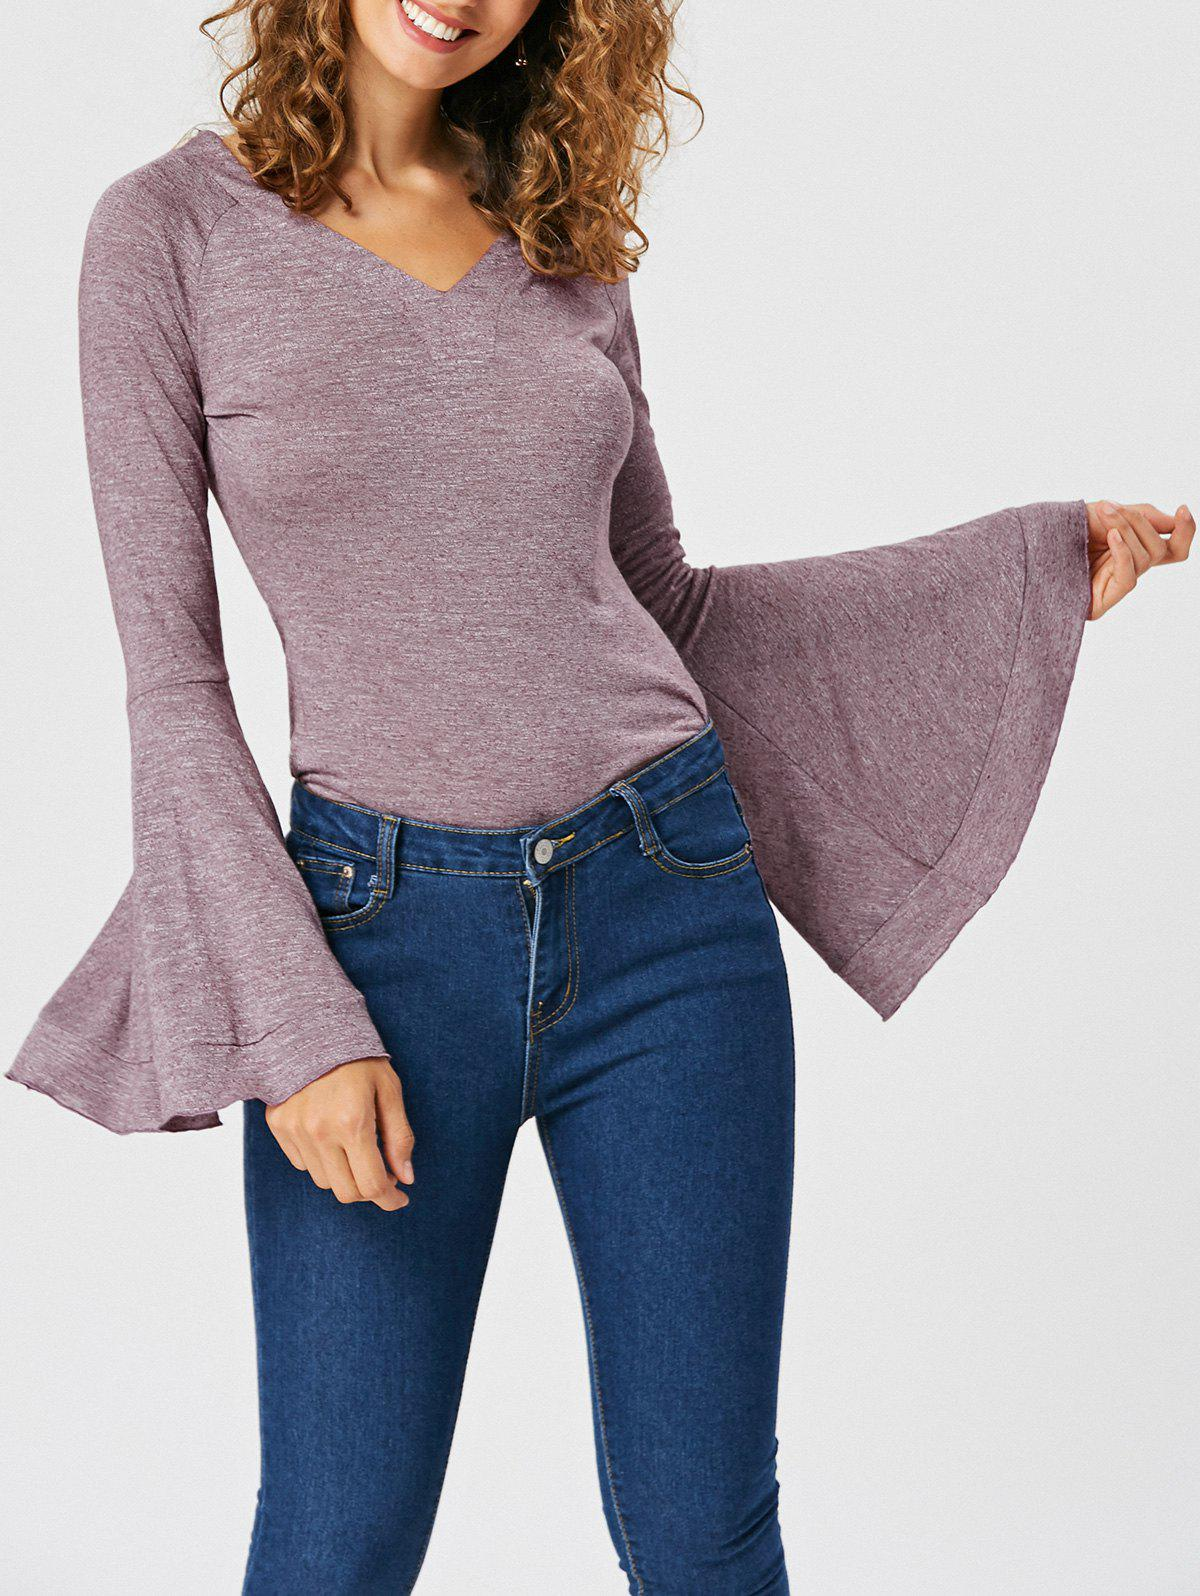 New Slimming V-neck Flounce Top with Flare Sleeve